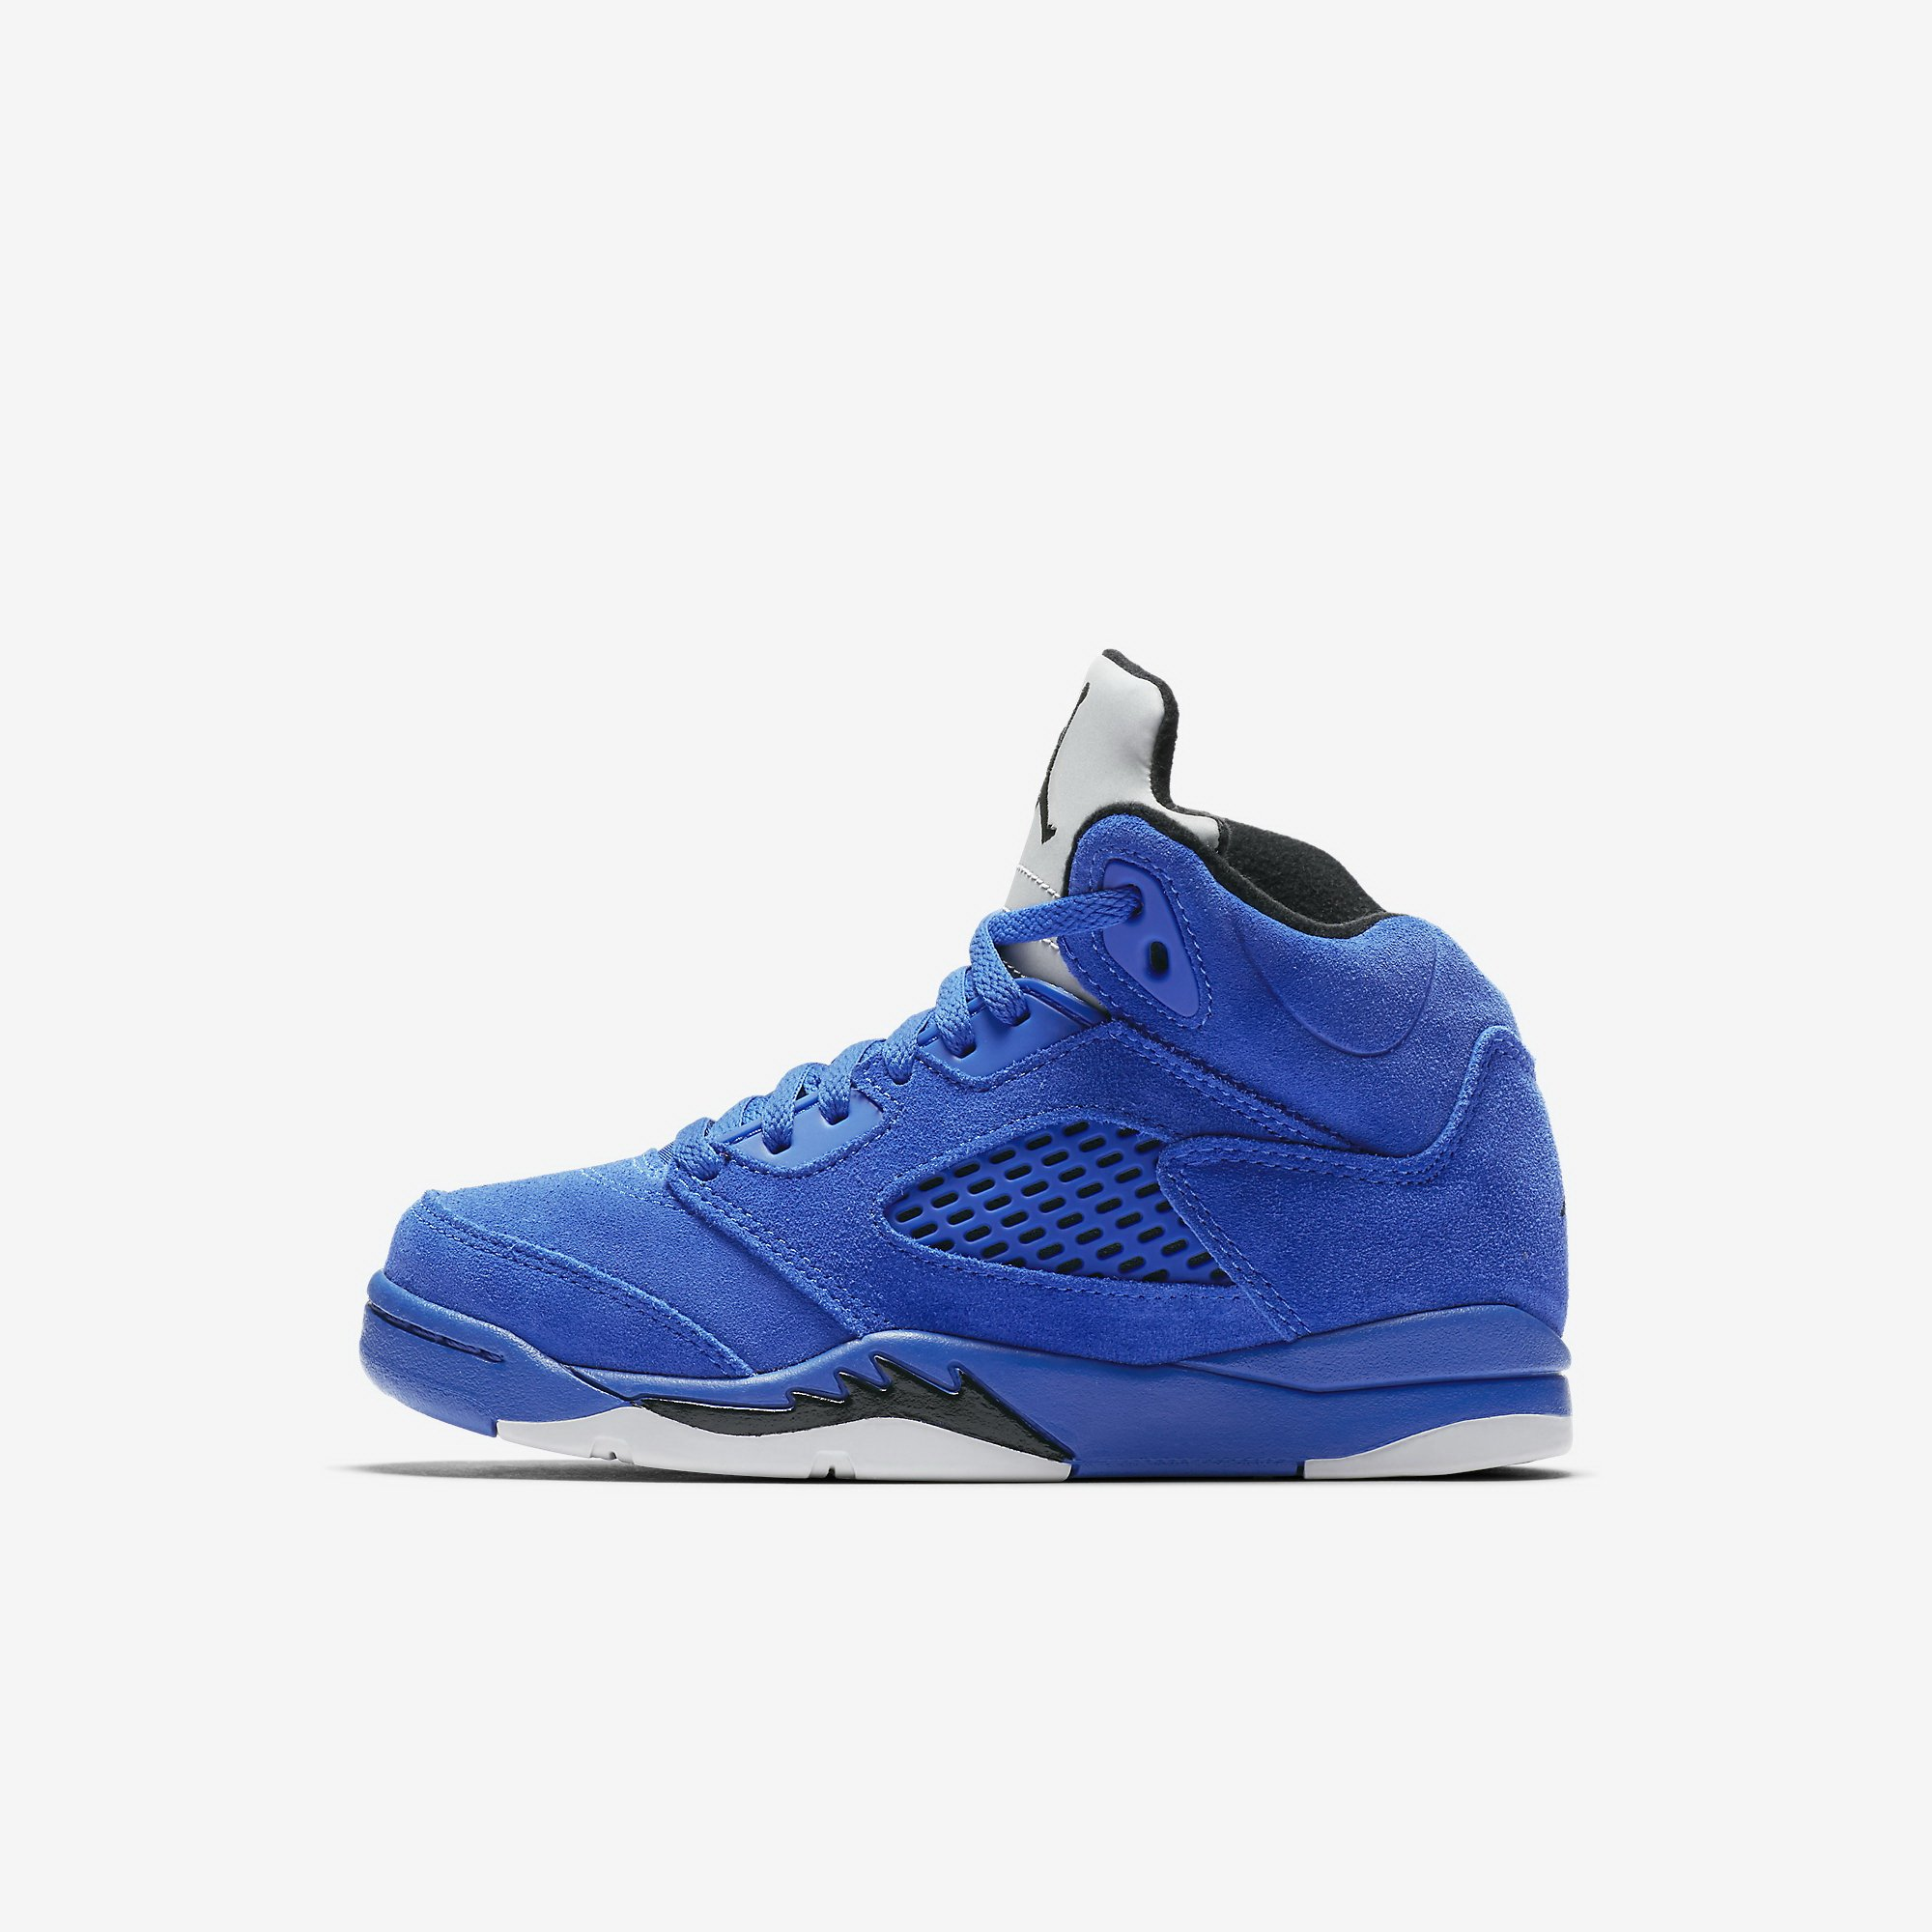 Jordan Little Kids Retro 5 Blue Suede Sneaker by Jordan